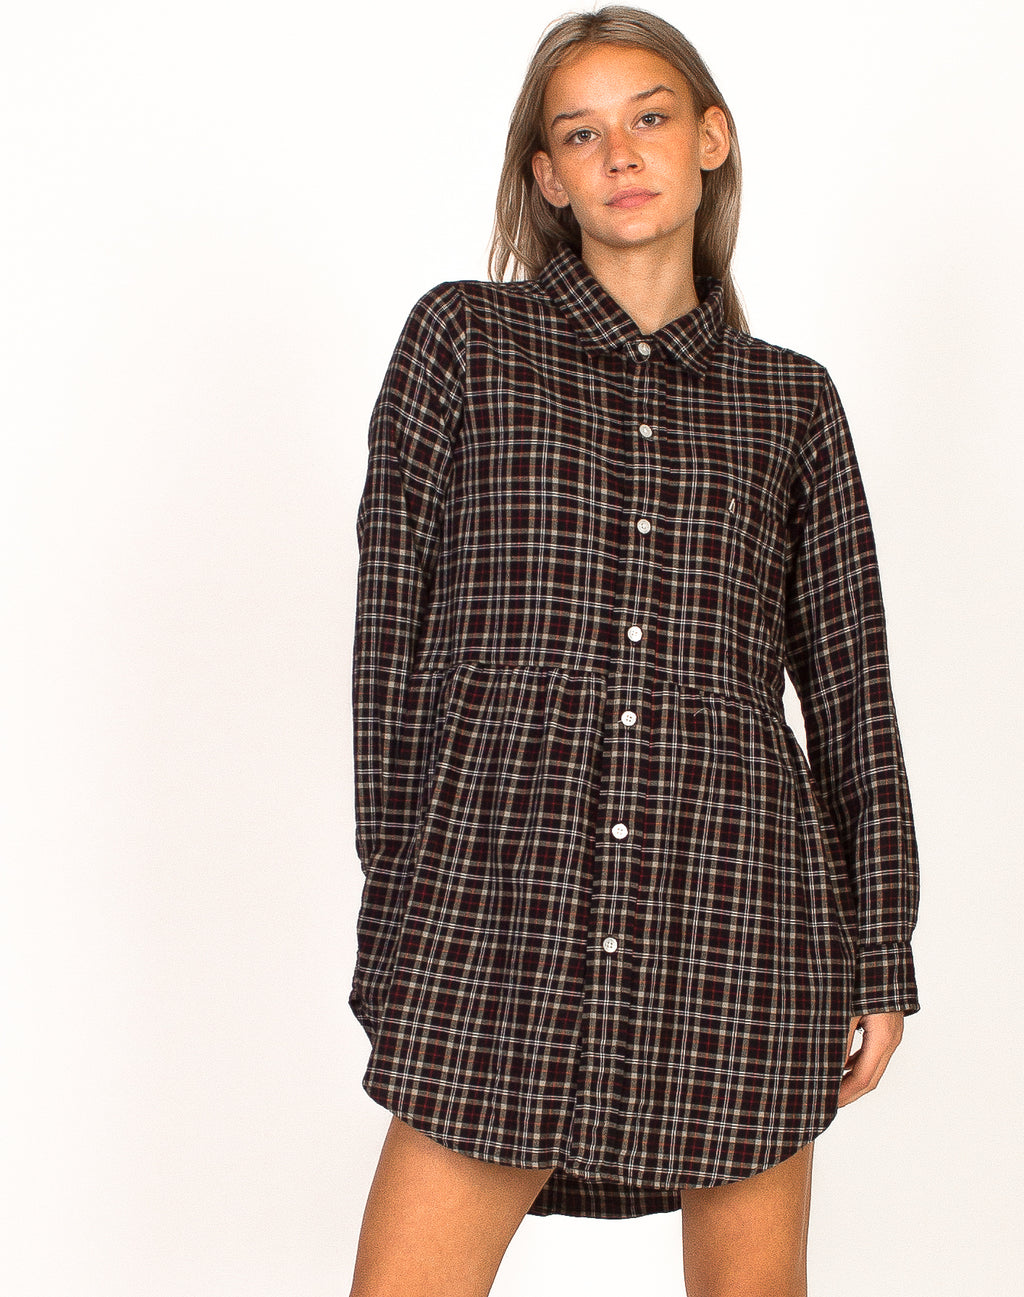 RALPH LAUREN BLACK CHECK SMOCK DRESS